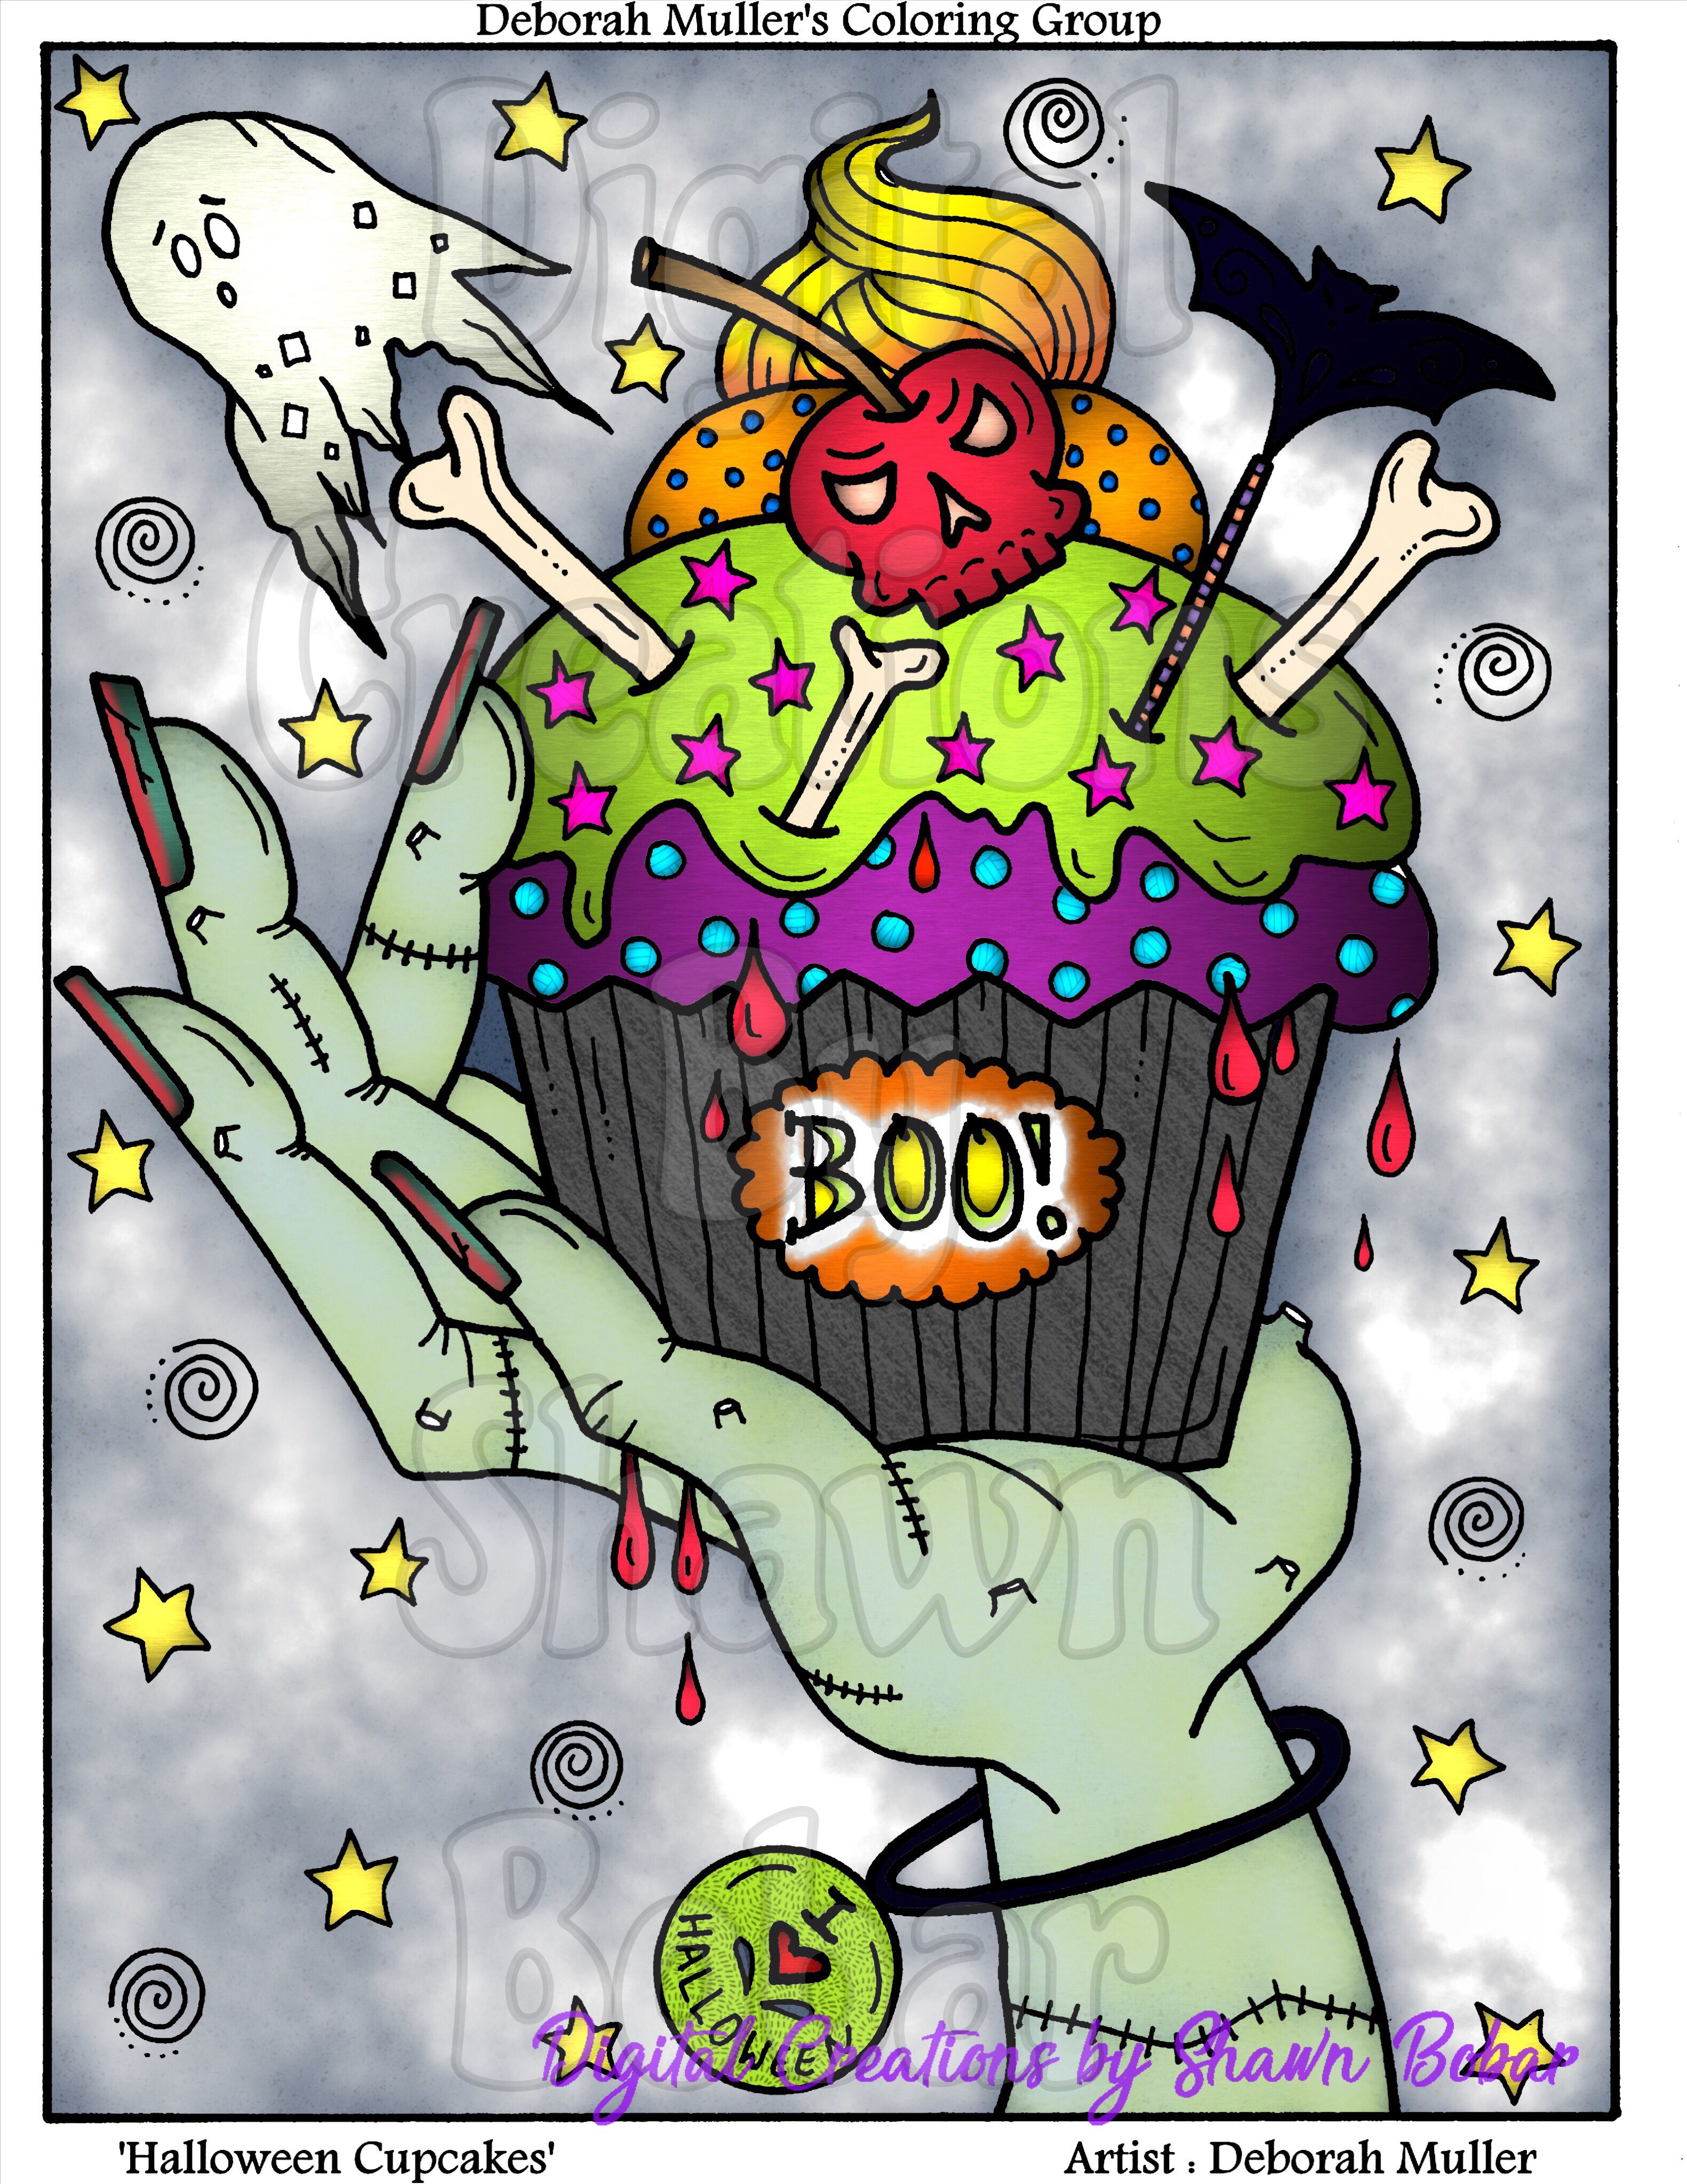 Halloween Cupcakes By Deborah Muller Available On Her Etsy Digitally Colored Using Pigment IPad Pro Apple Pen